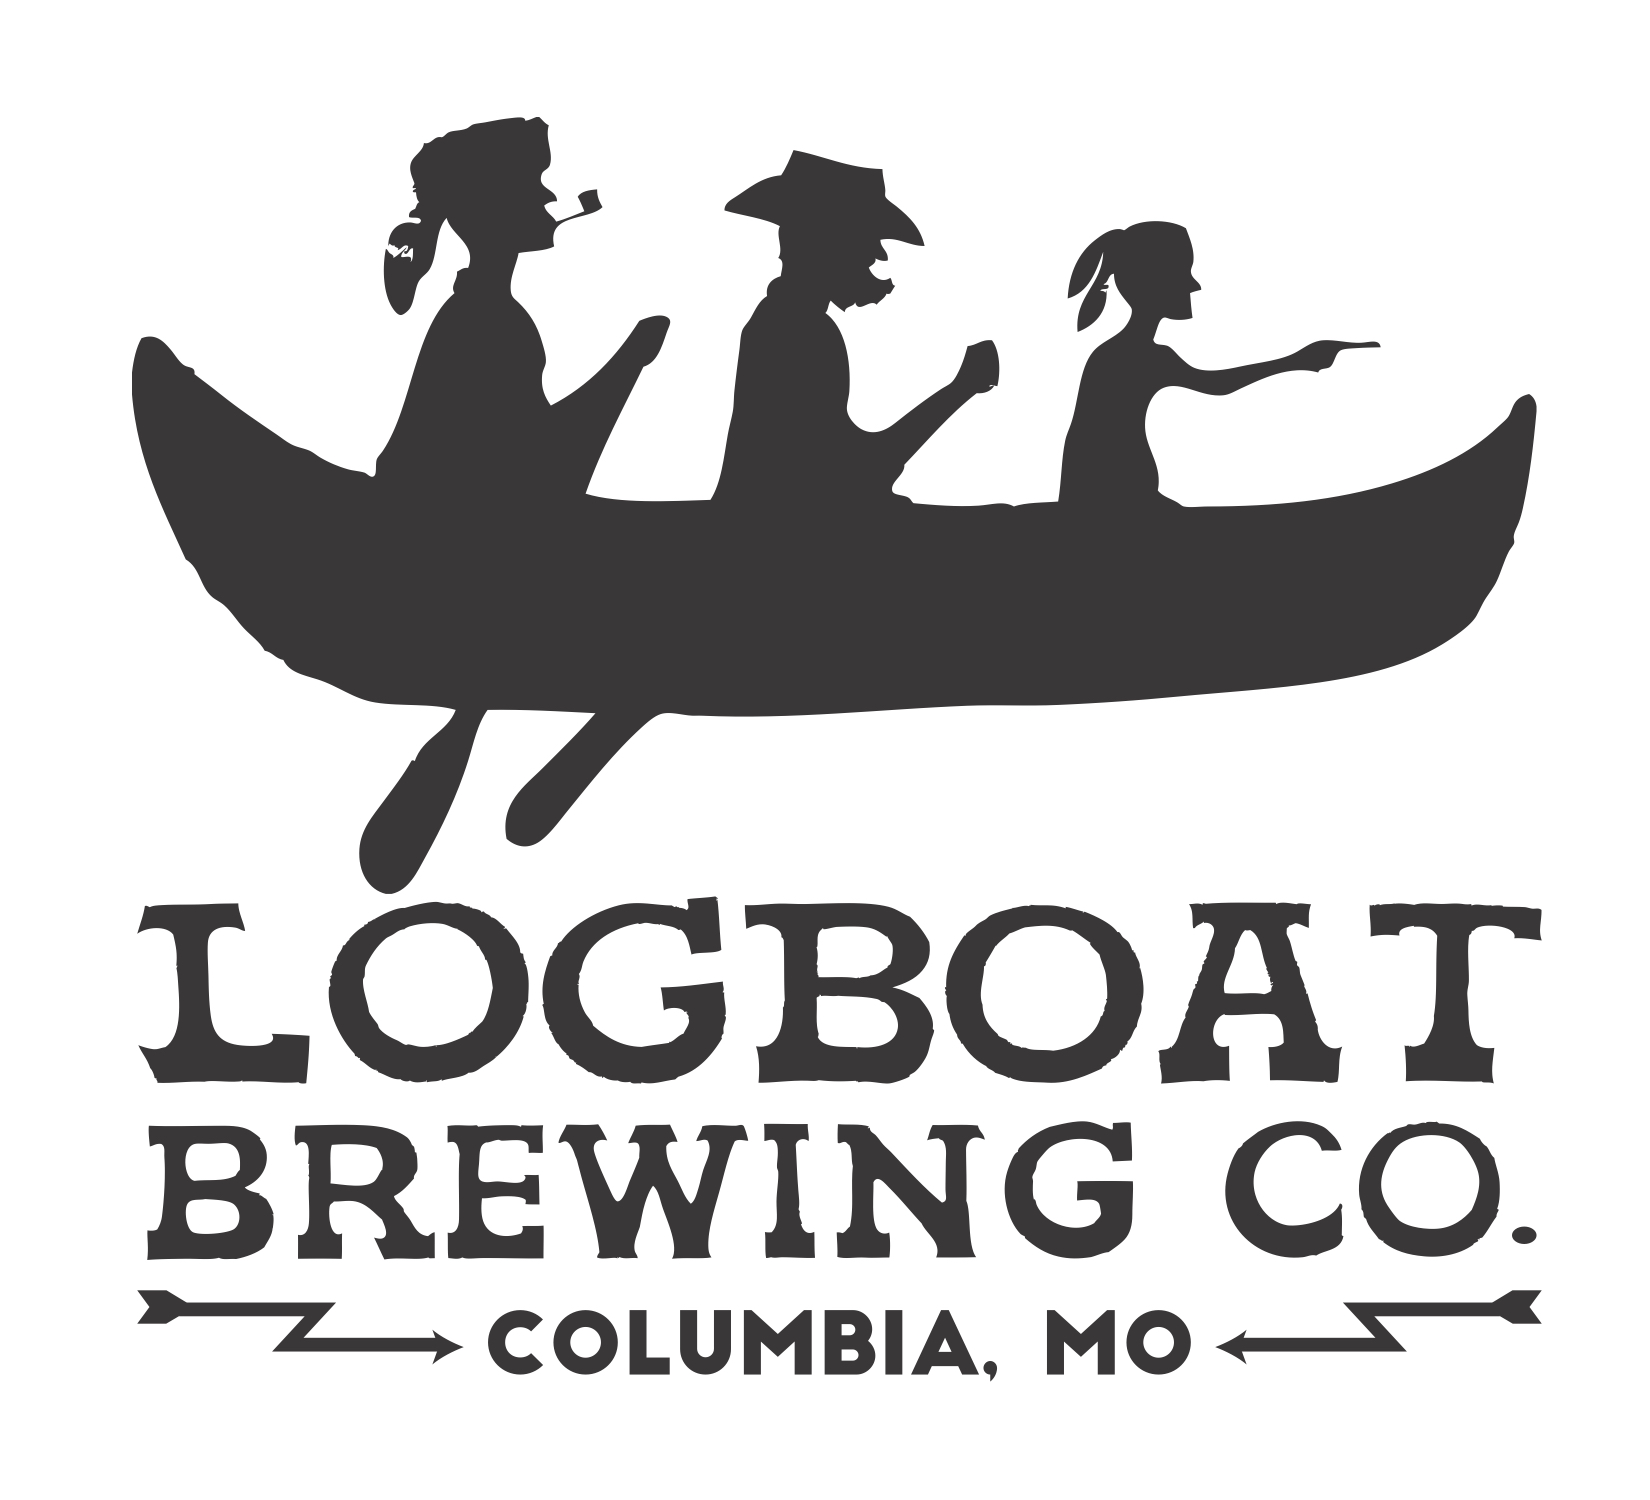 Logboat Brewing Company - Thank you for your donation to Paddle MO 2019 and your support of Missouri Stream Teams! Keep your paddle wet!